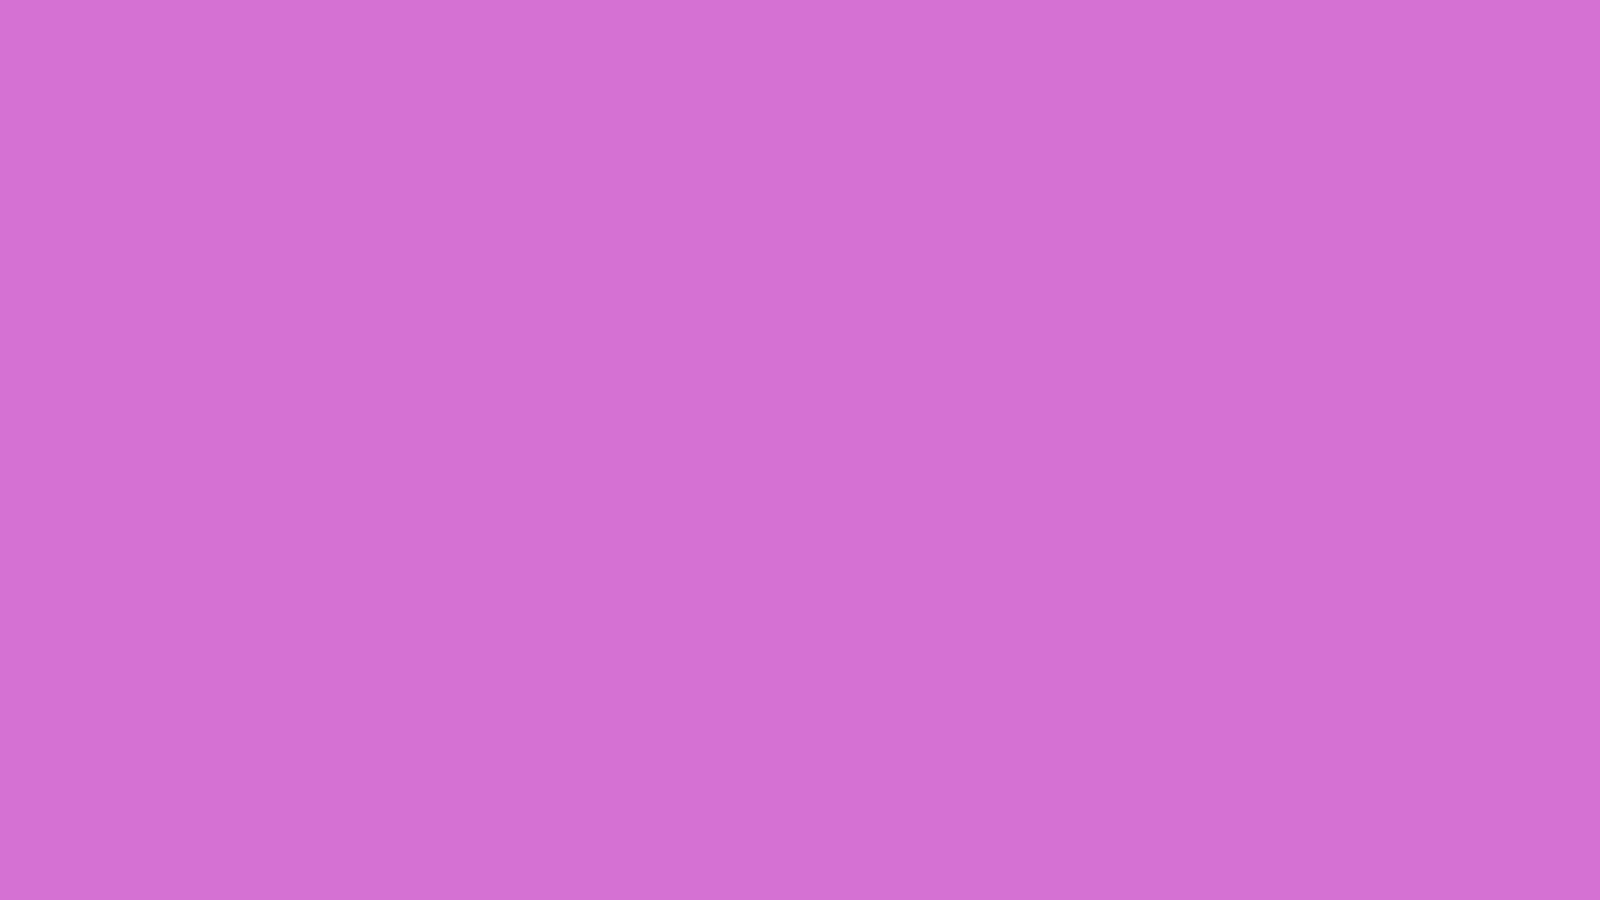 1600x900 French Mauve Solid Color Background